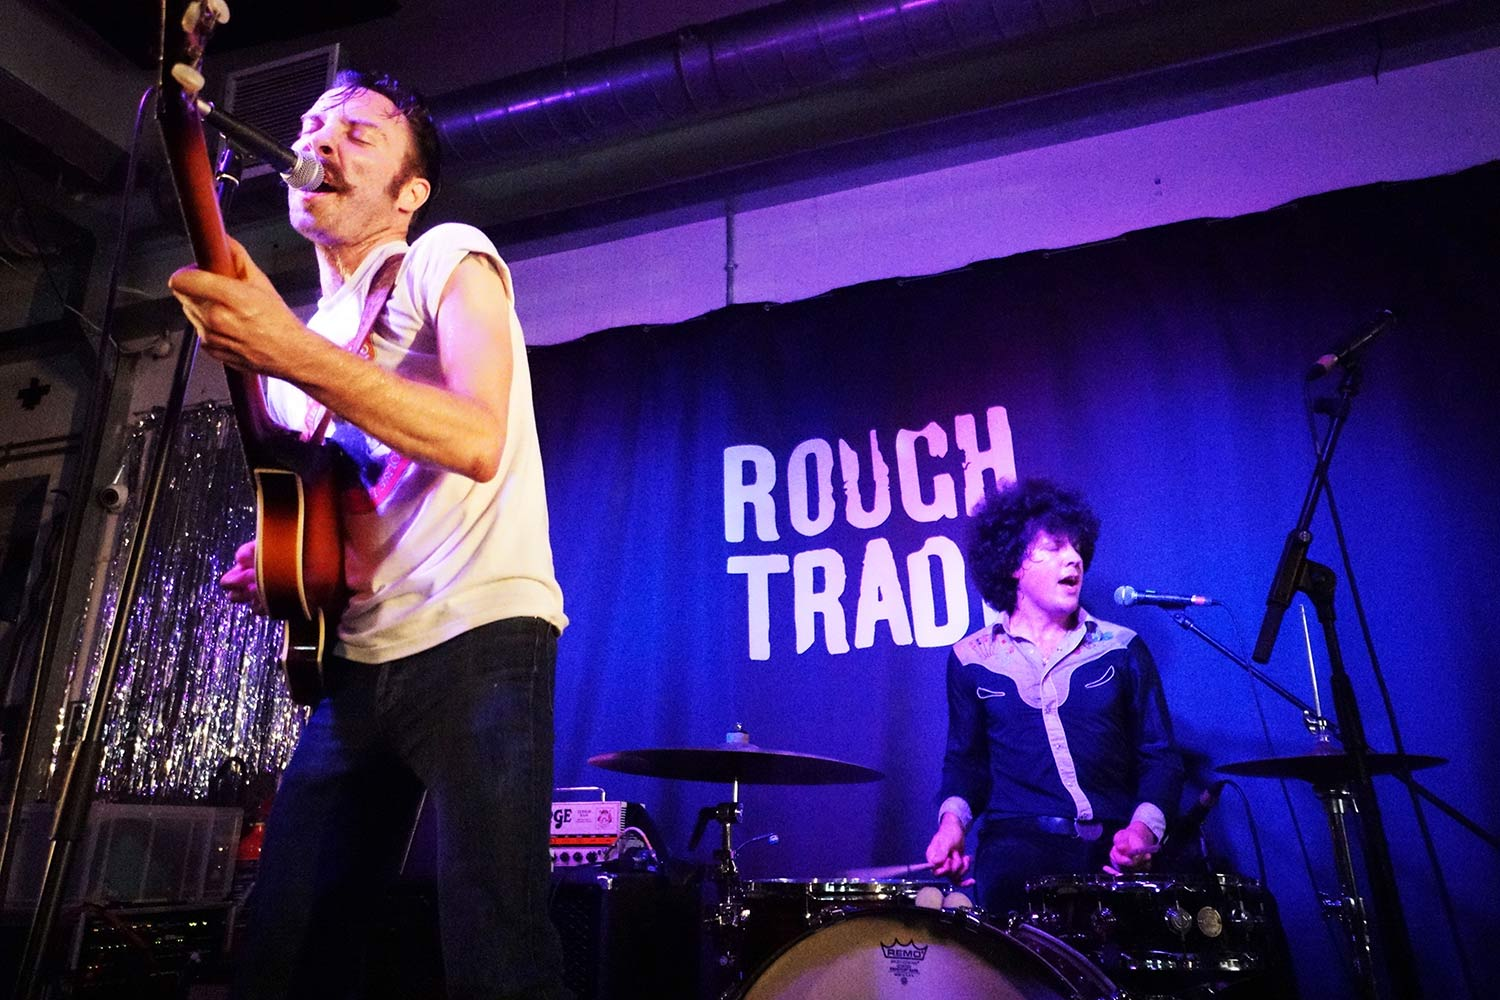 The Black Lips, Rough Trade East, Old Truman Brewery, Dray Walk, East London, Spitalfields